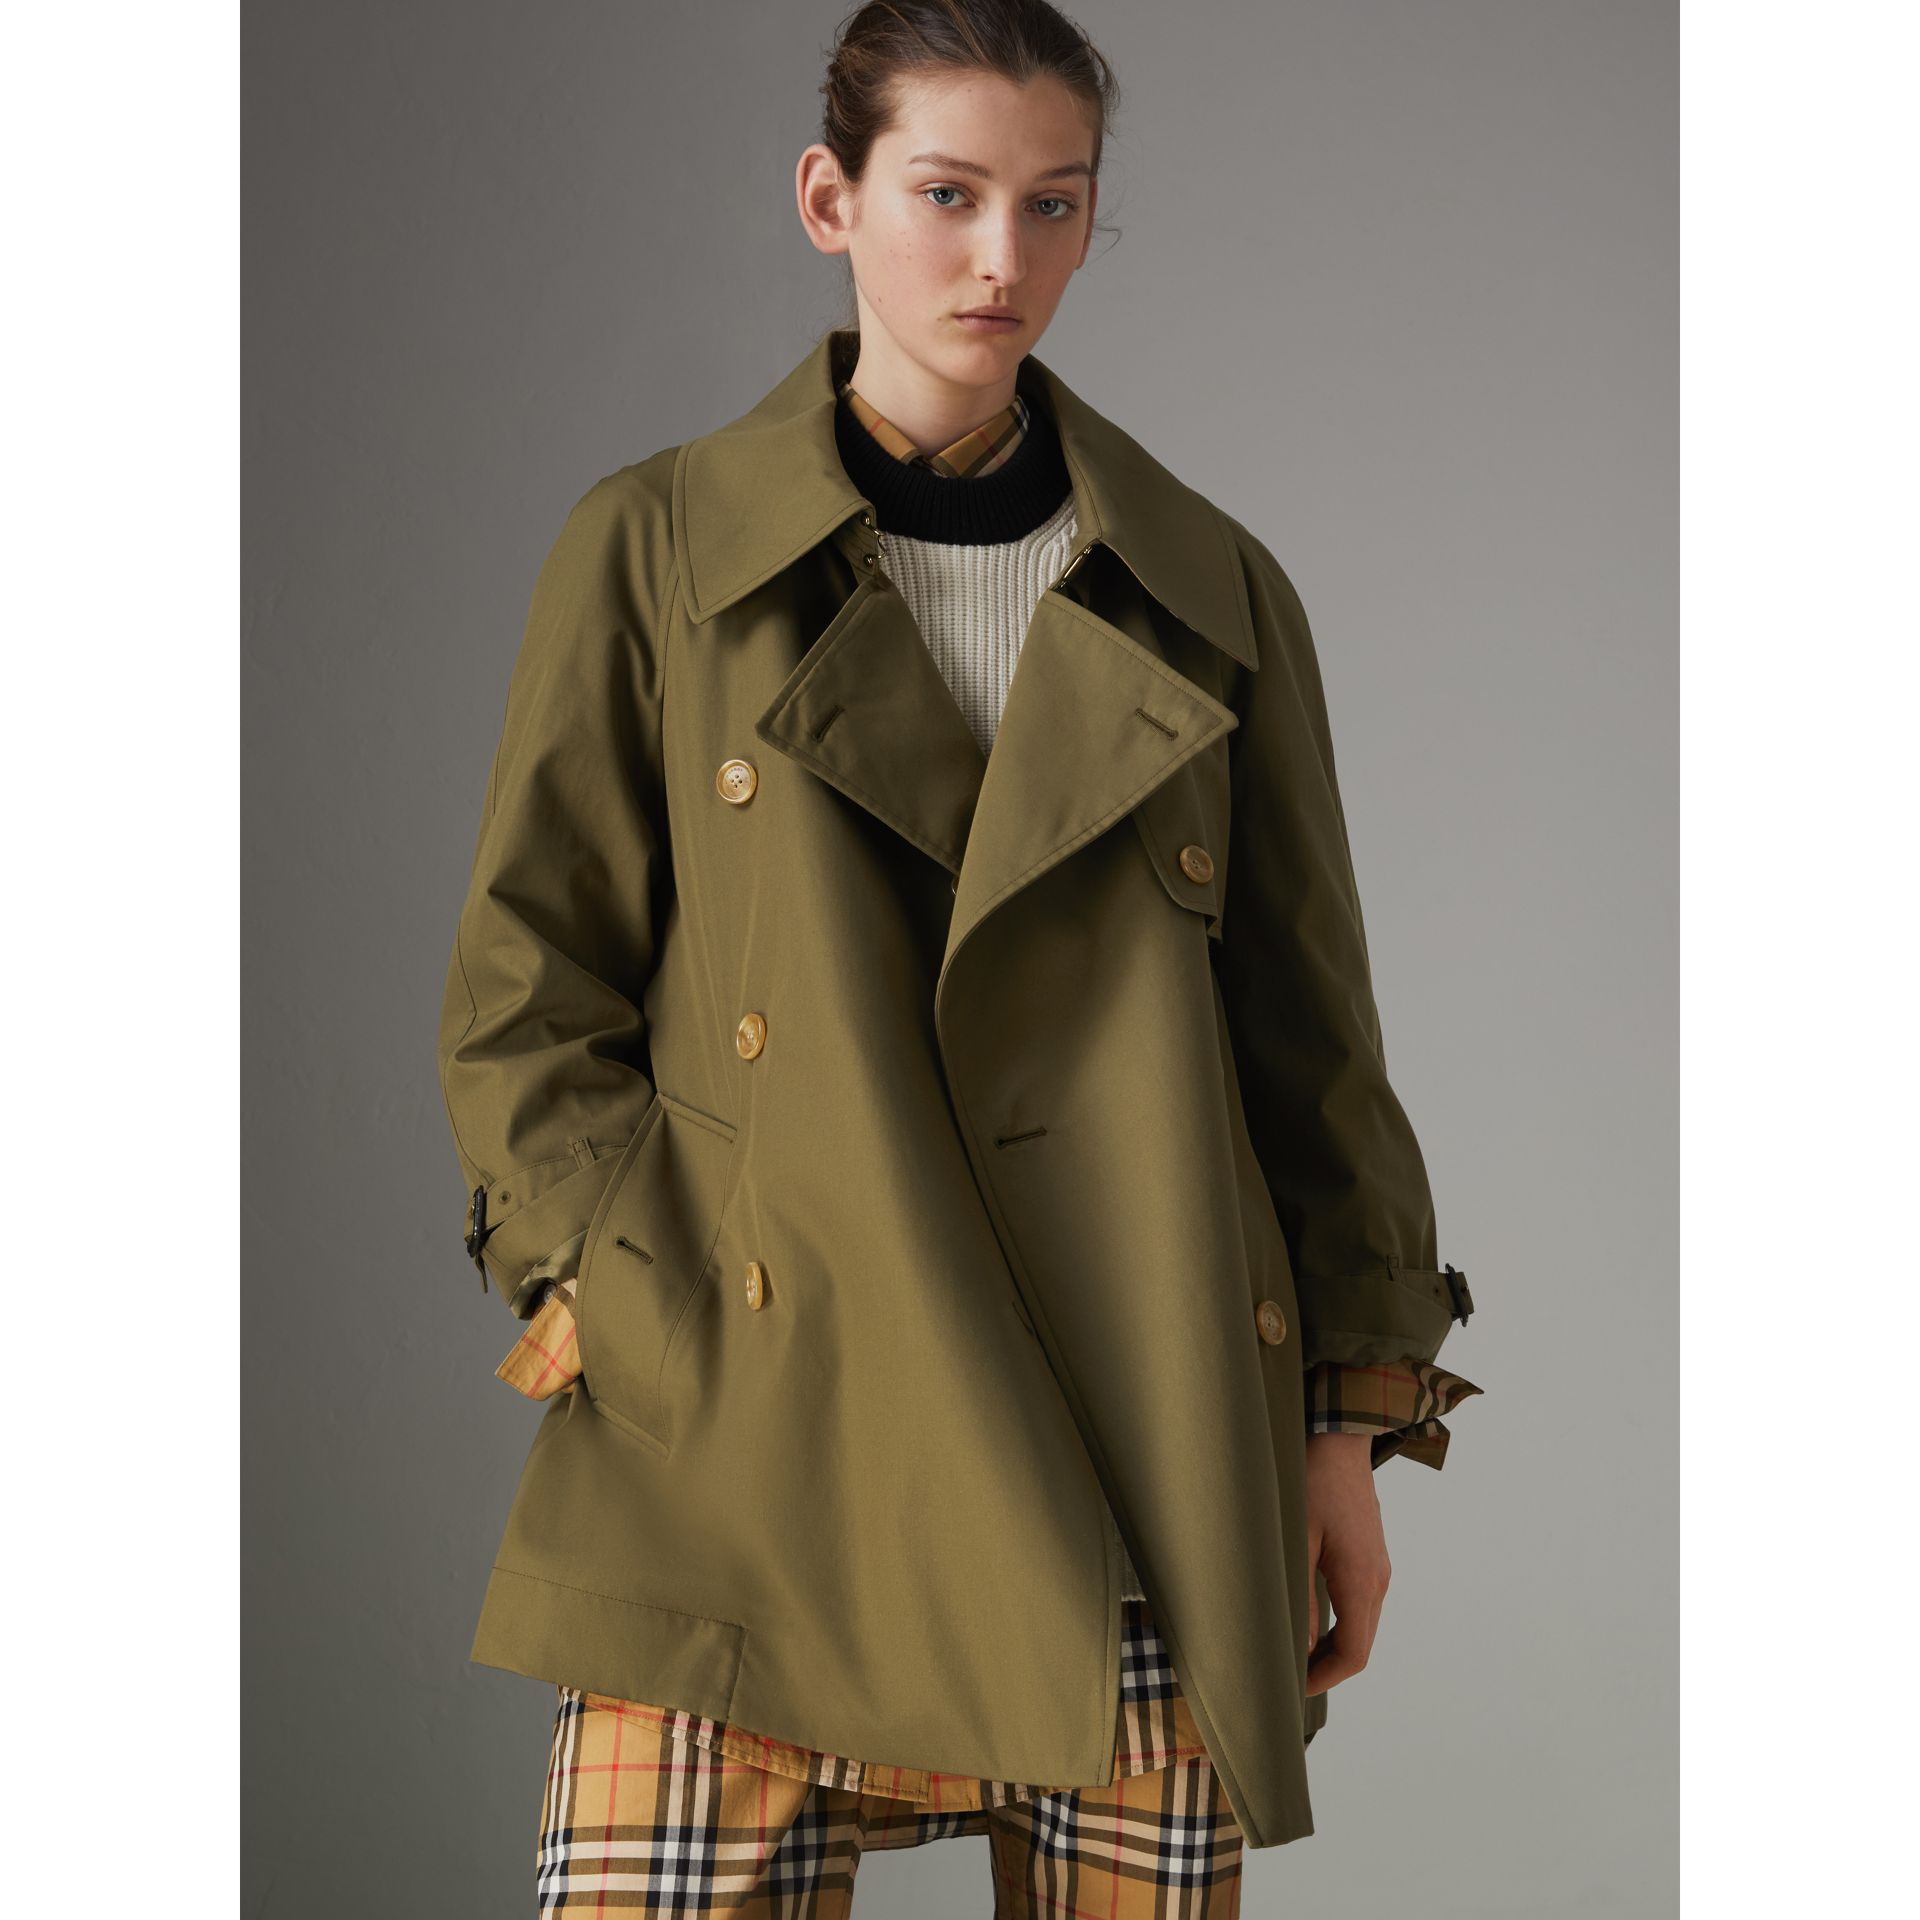 Exaggerated Collar Cotton Gabardine Trench Coat in Military Olive - Women | Burberry United Kingdom - gallery image 5